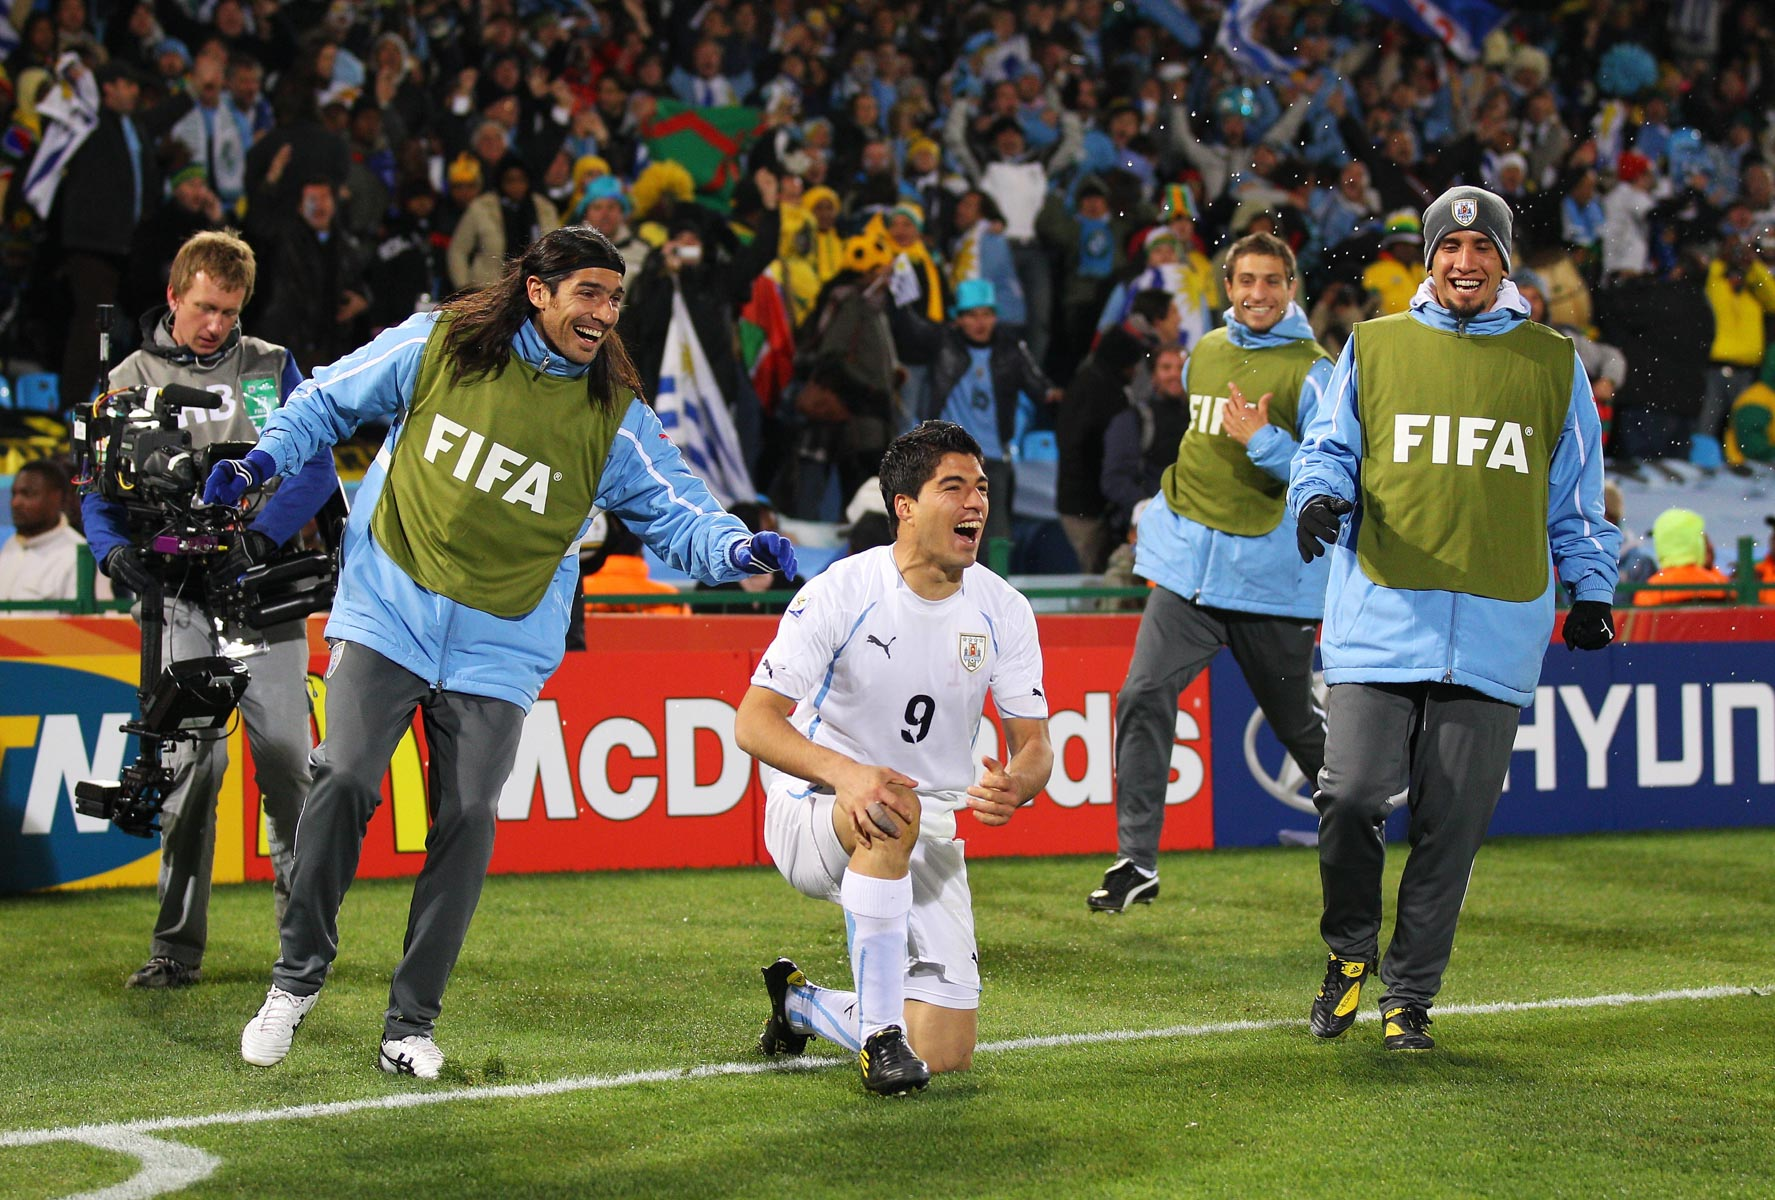 16 June 2010: Luis Suarez celebrates Uruguay's victory with his teammates at Loftus Versfeld. (Photograph by Cameron Spencer/ Getty Images)